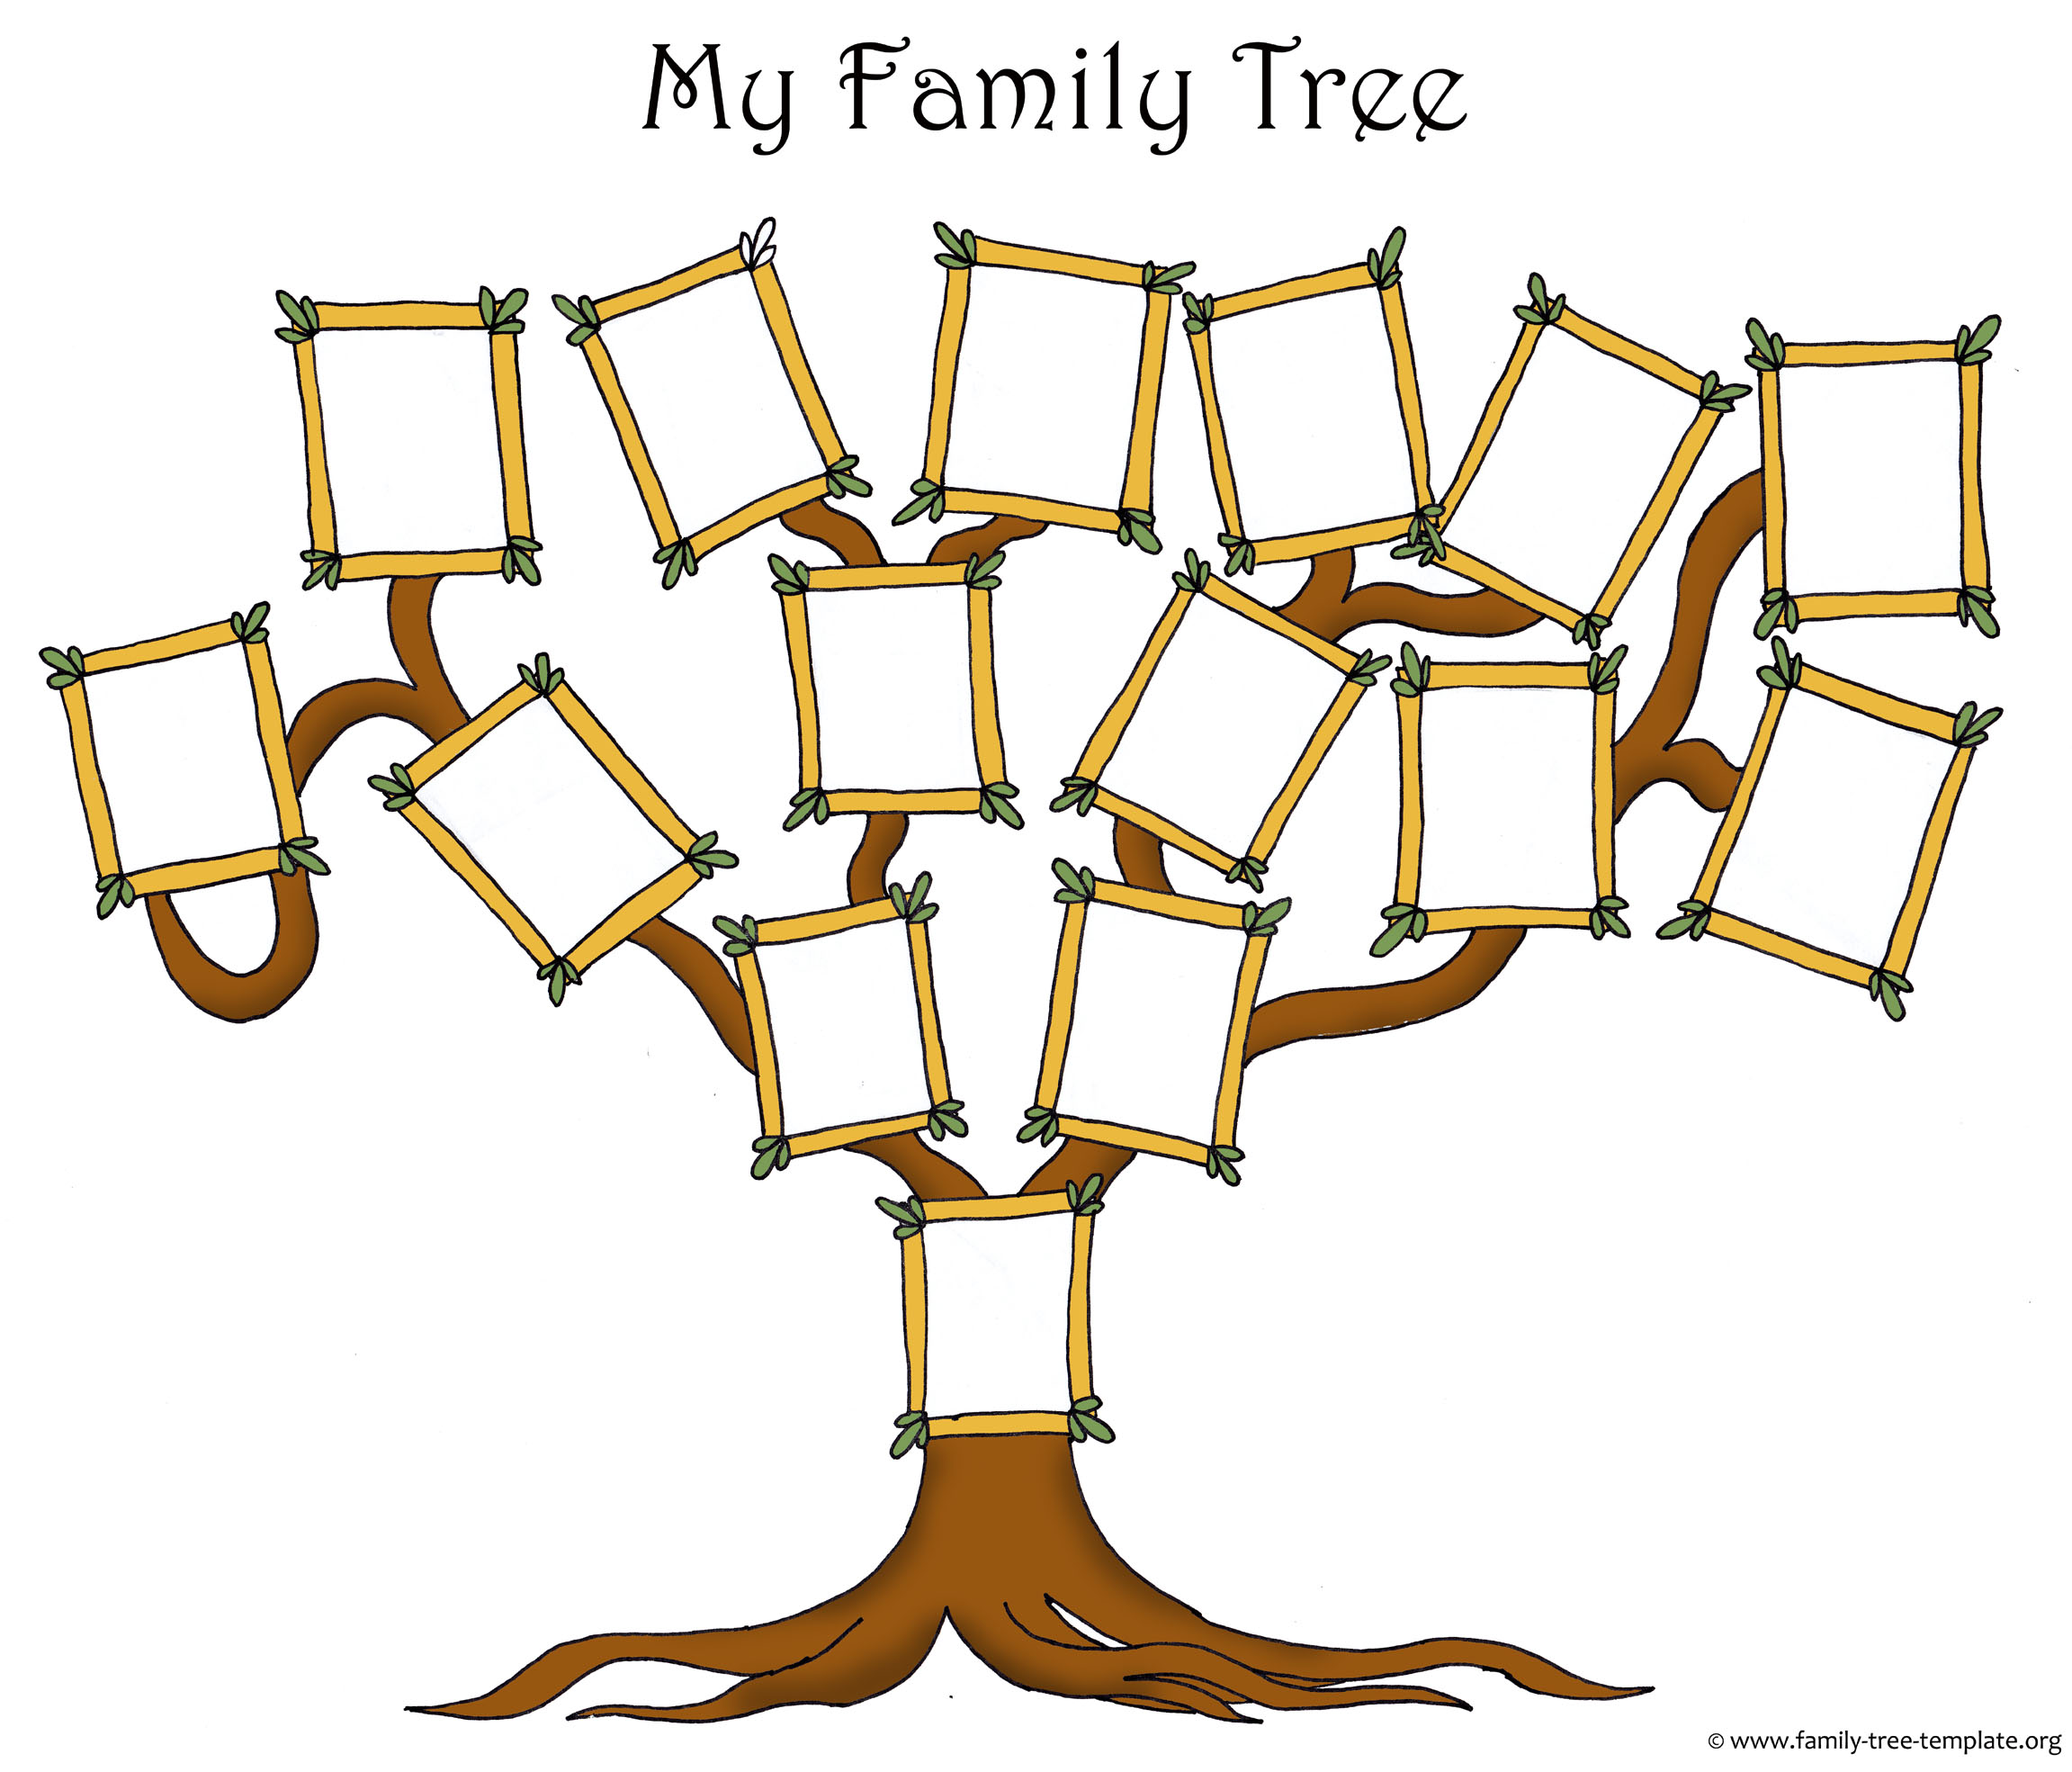 draw a family tree template - free family tree template designs for making ancestry charts